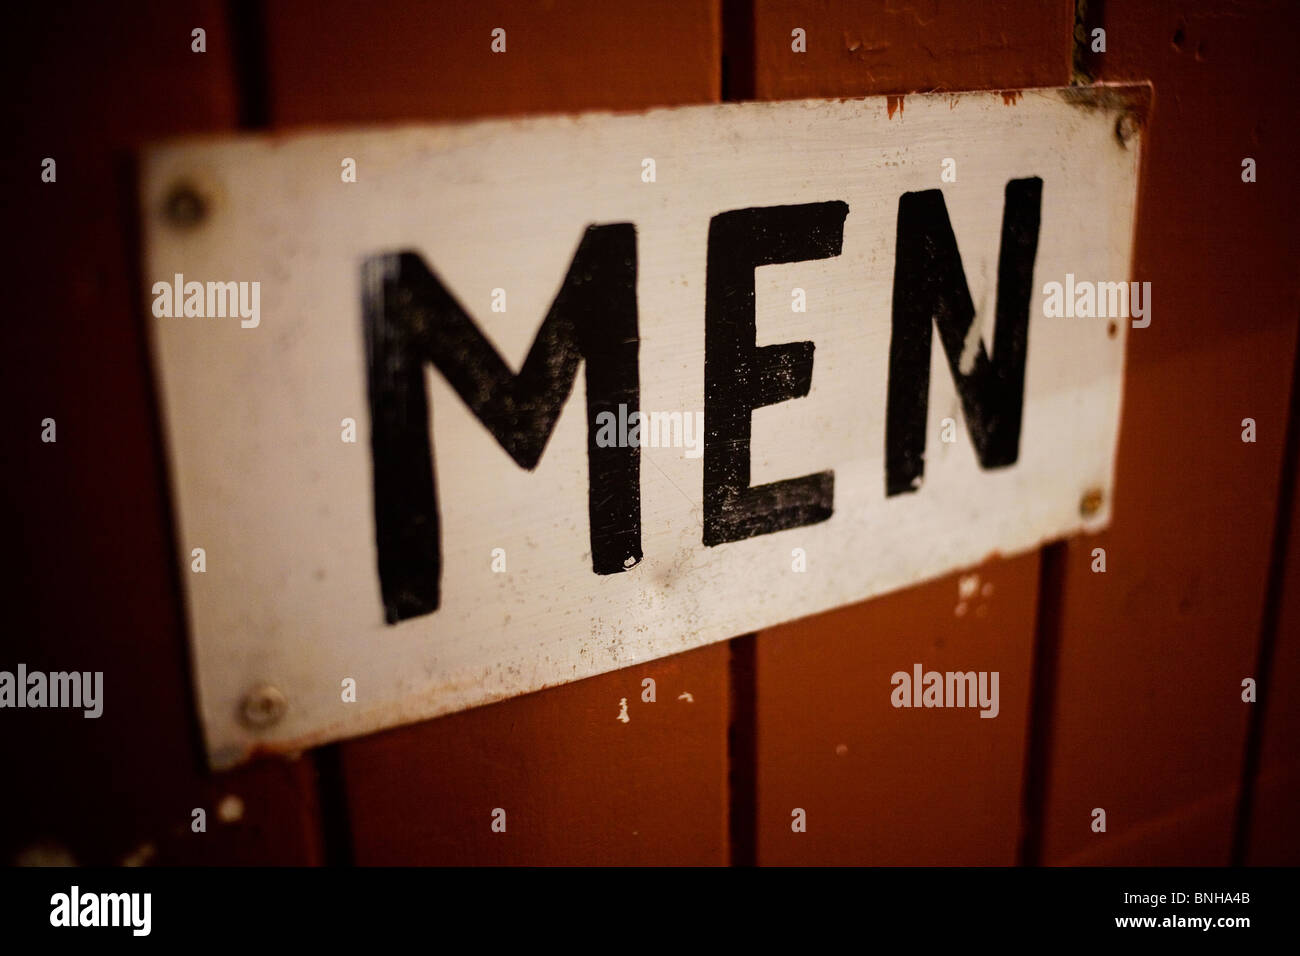 entrance to the mens bathroom stock image - Mens Bathroom Sign